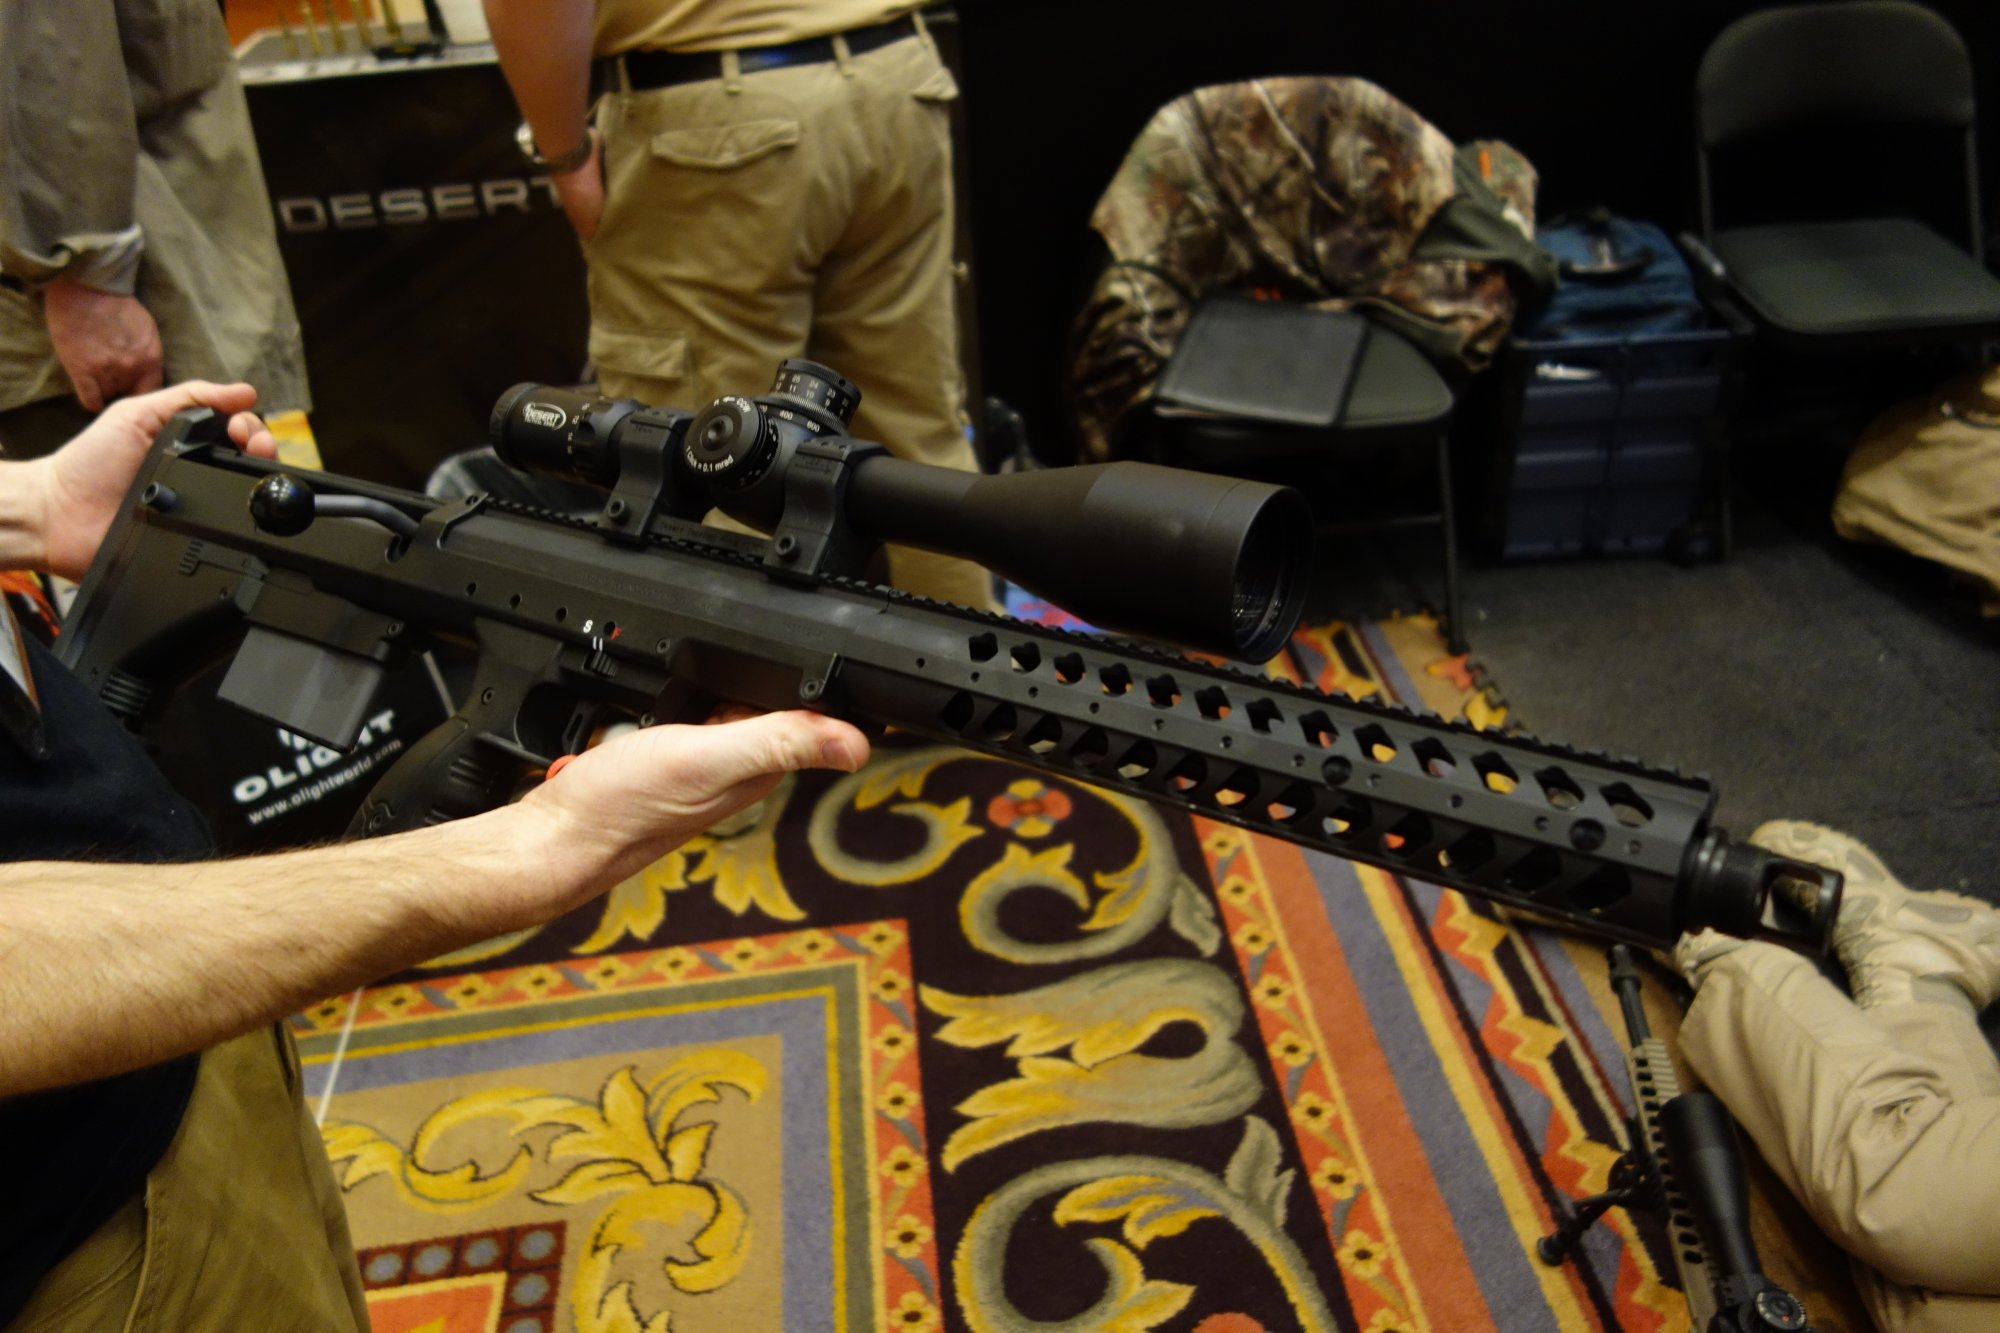 Desert Tech (formerly Desert Tactical Arms, or DTA) Stealth Recon Scout-A1 (DT SRS-A1) Rifle Chassis System: Compact, Modular and Super-Accurate Multi-Caliber Bullpup Anti-Materiel Sniper Rifle/Carbine